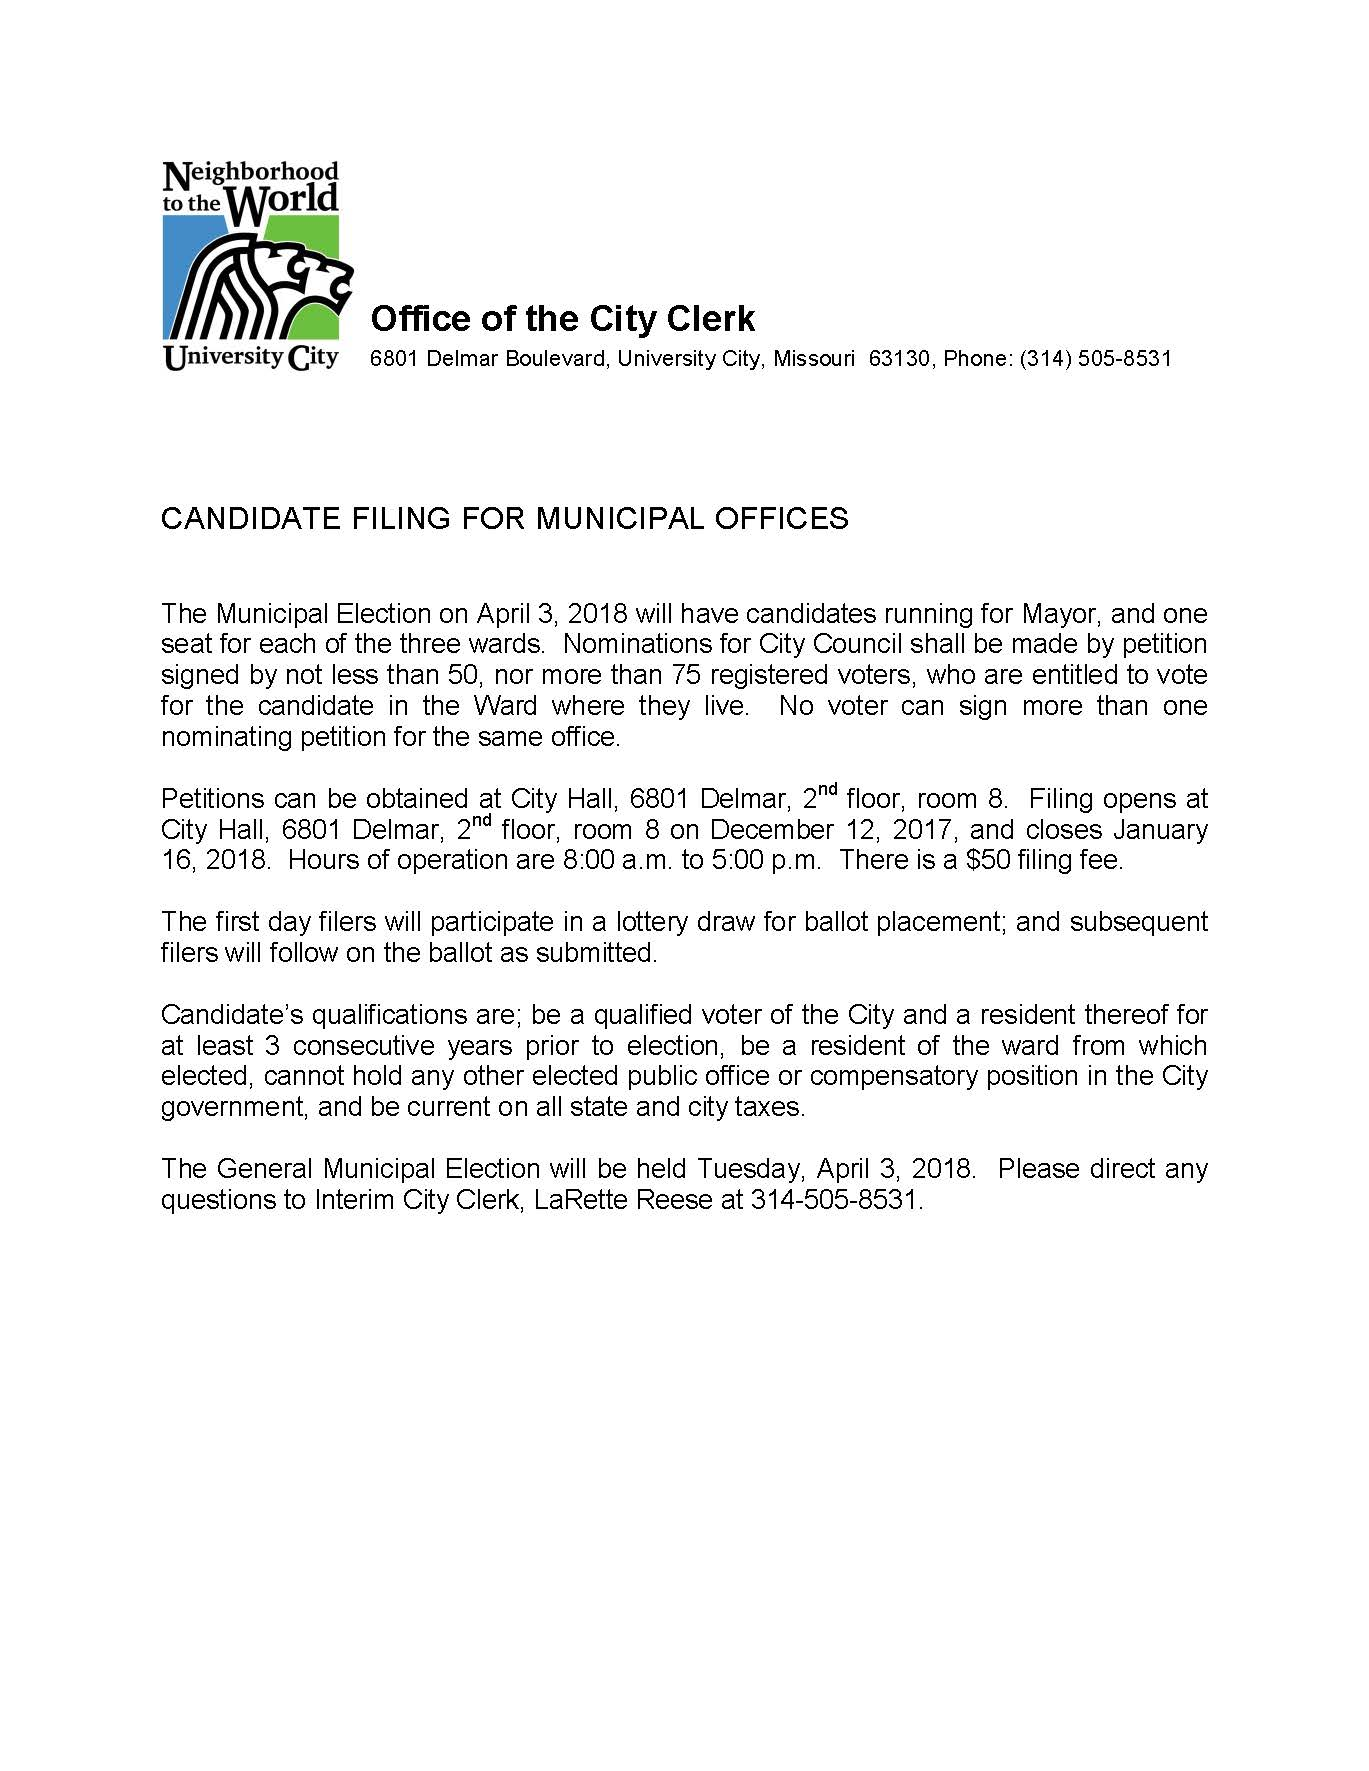 Candidate Filing Notice - April 3, 2018 Municipal Election